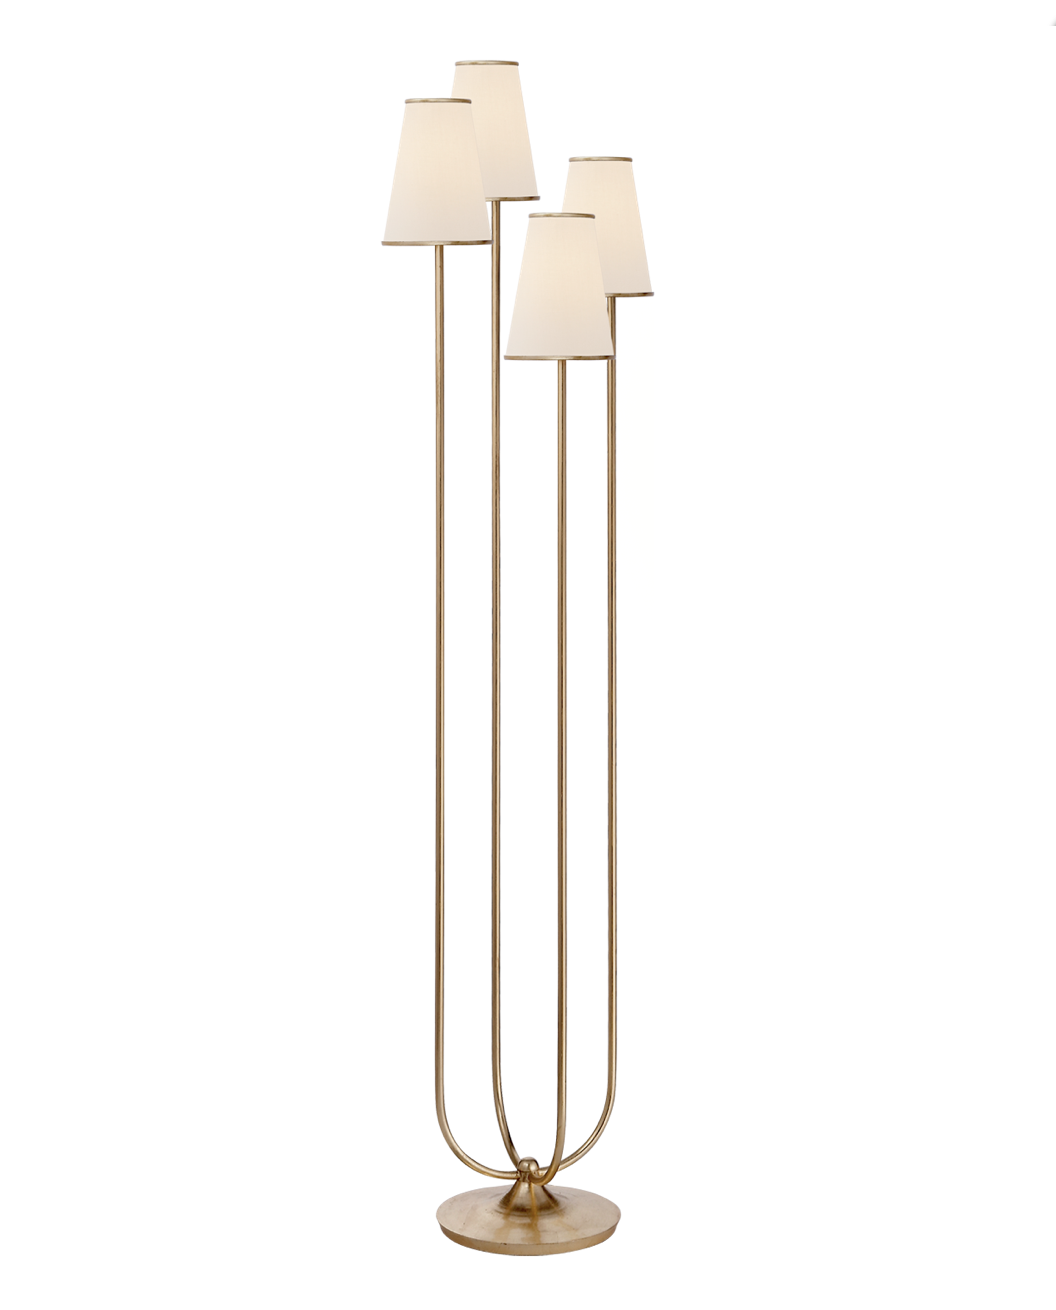 Montreuil Floor Lamp in Gild with Linen Shades